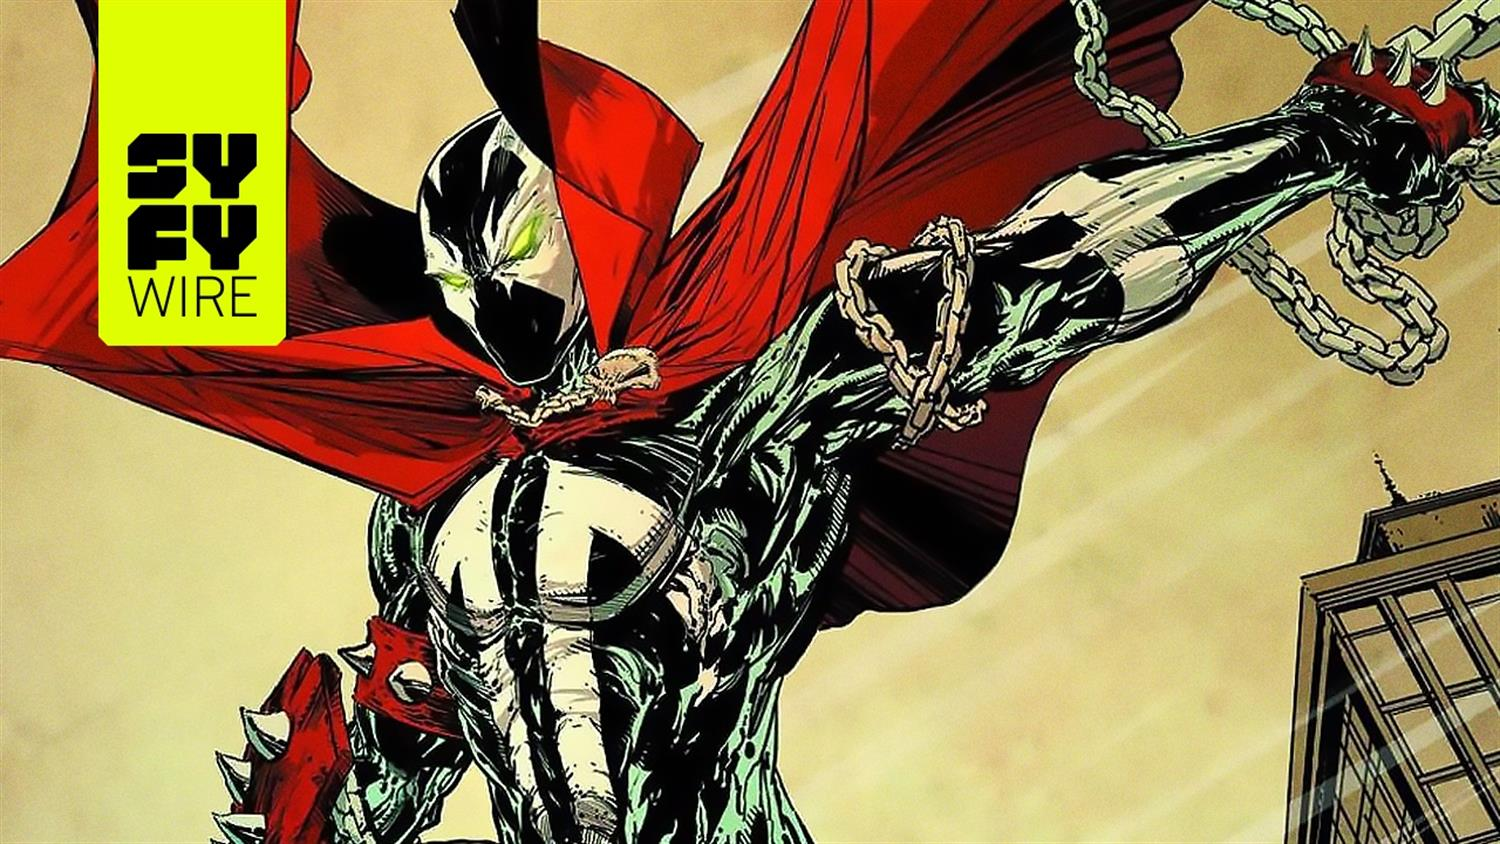 Todd McFarlane Previews His New Spawn Movie